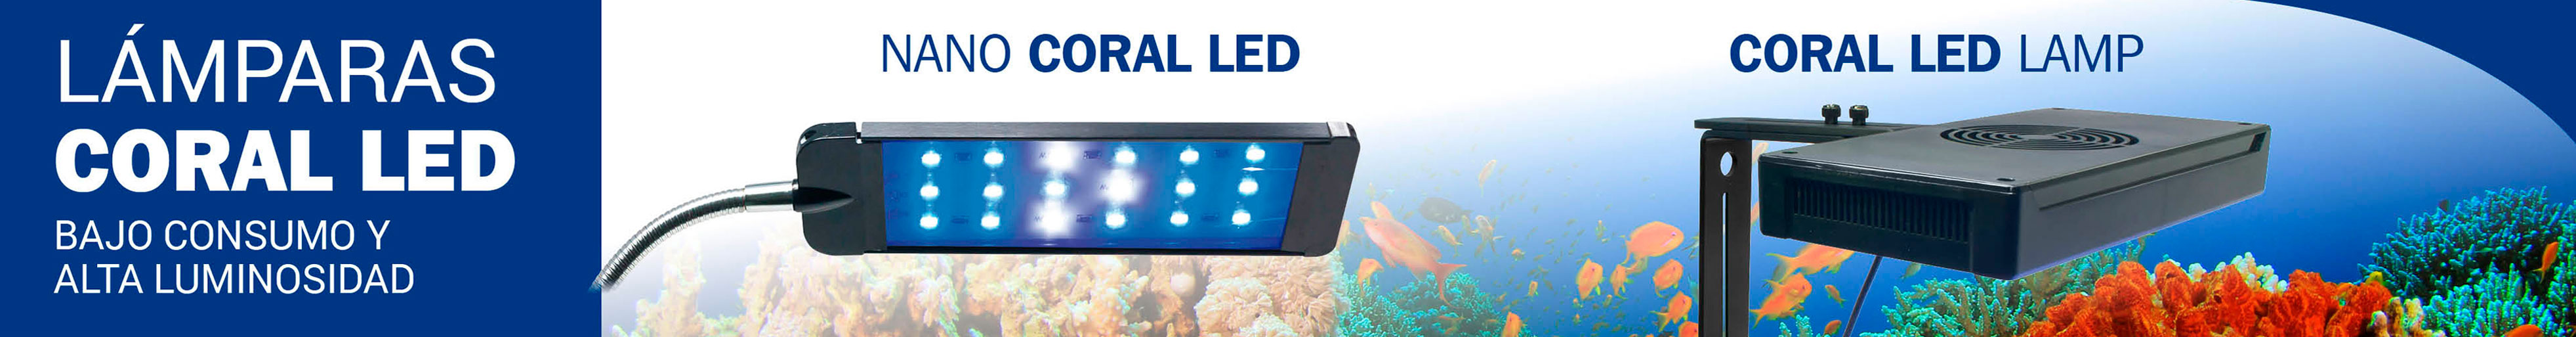 CORAL LED